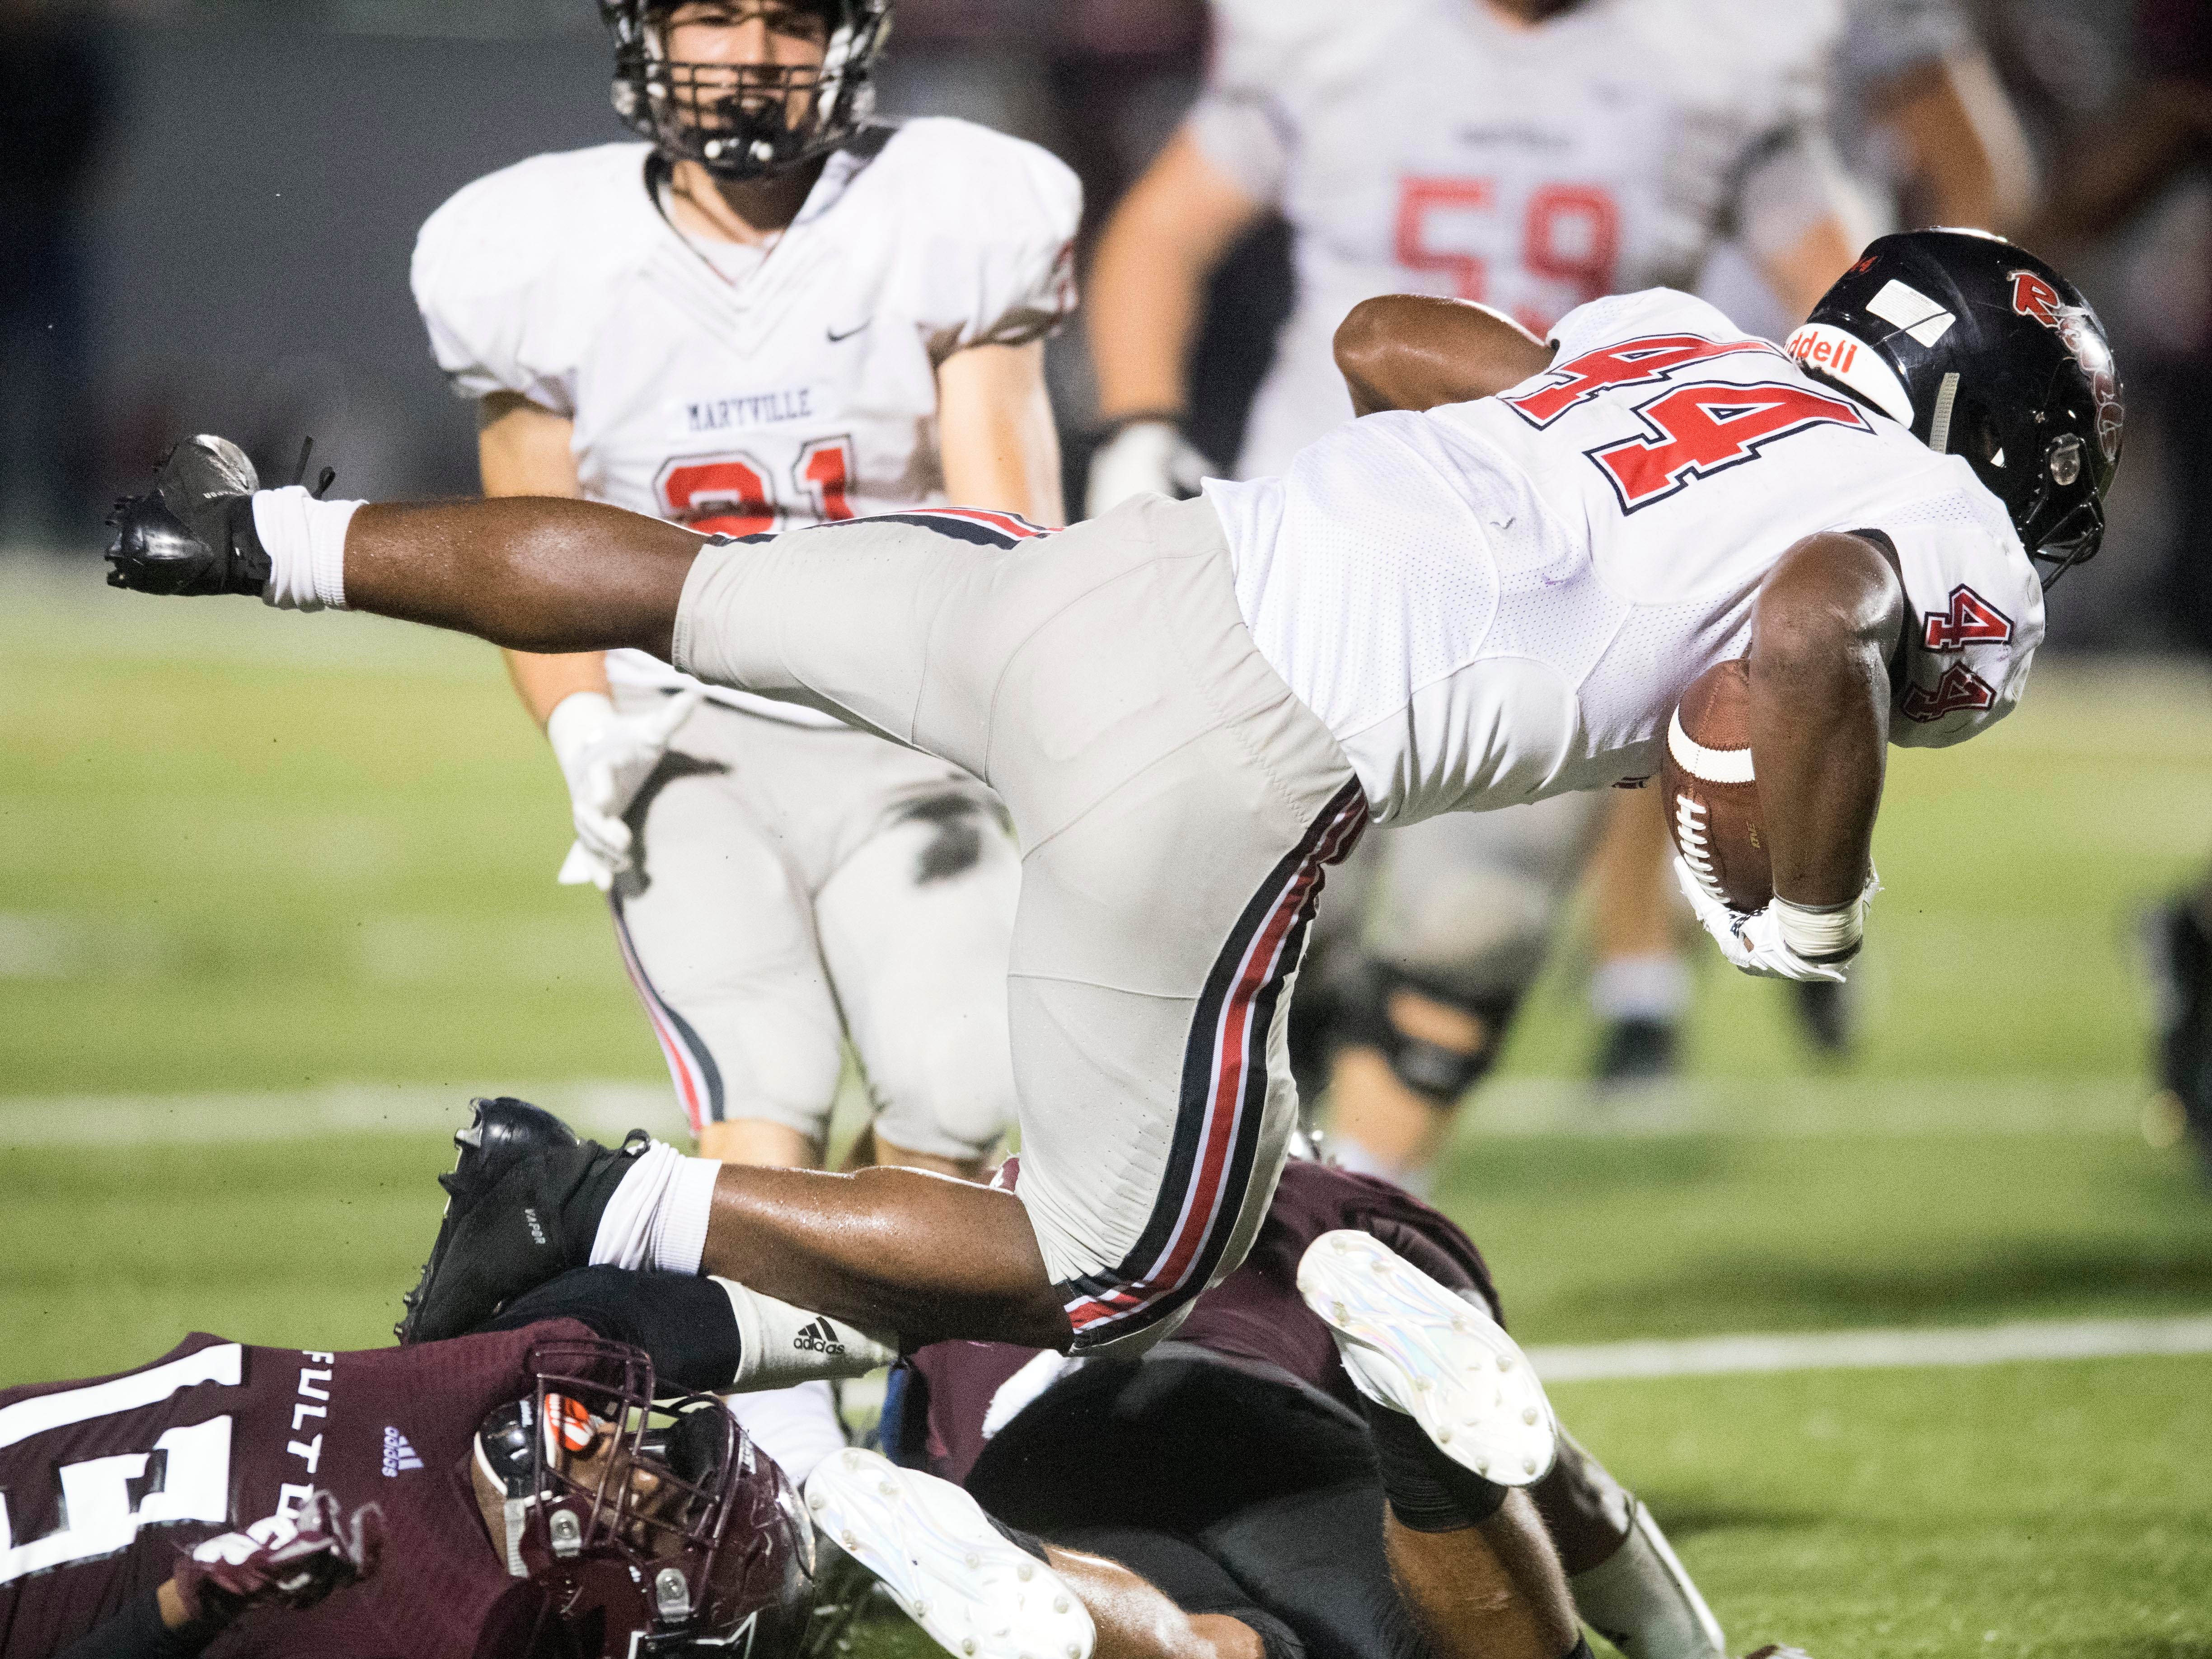 Maryville's Tee Hodge (44) fights for yards in the football game against Fulton on Friday, September 21, 2018.